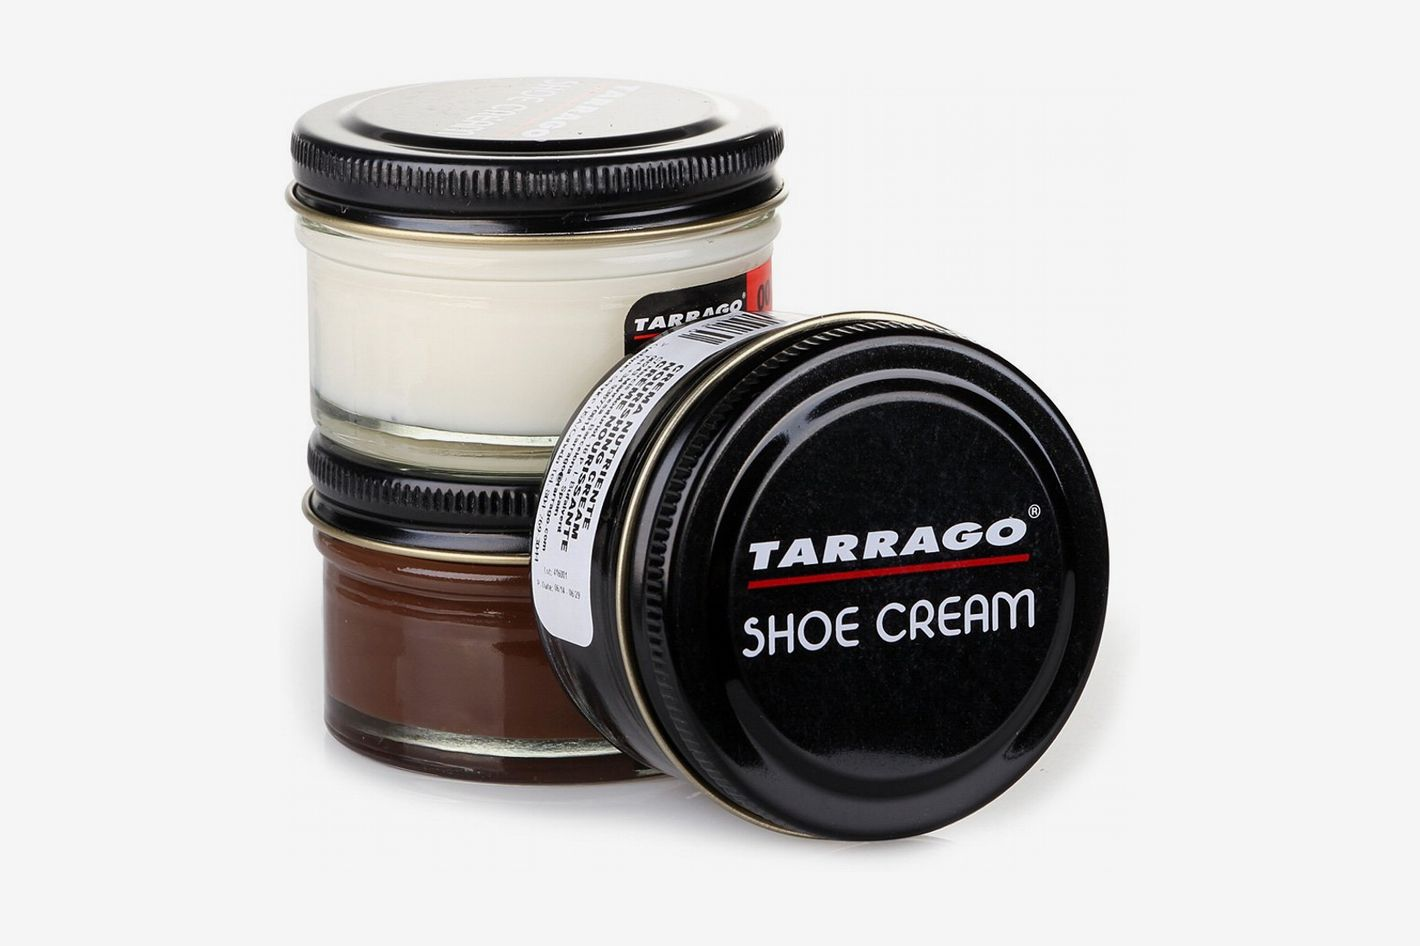 Tarrago Shoe Cream 3-Pack